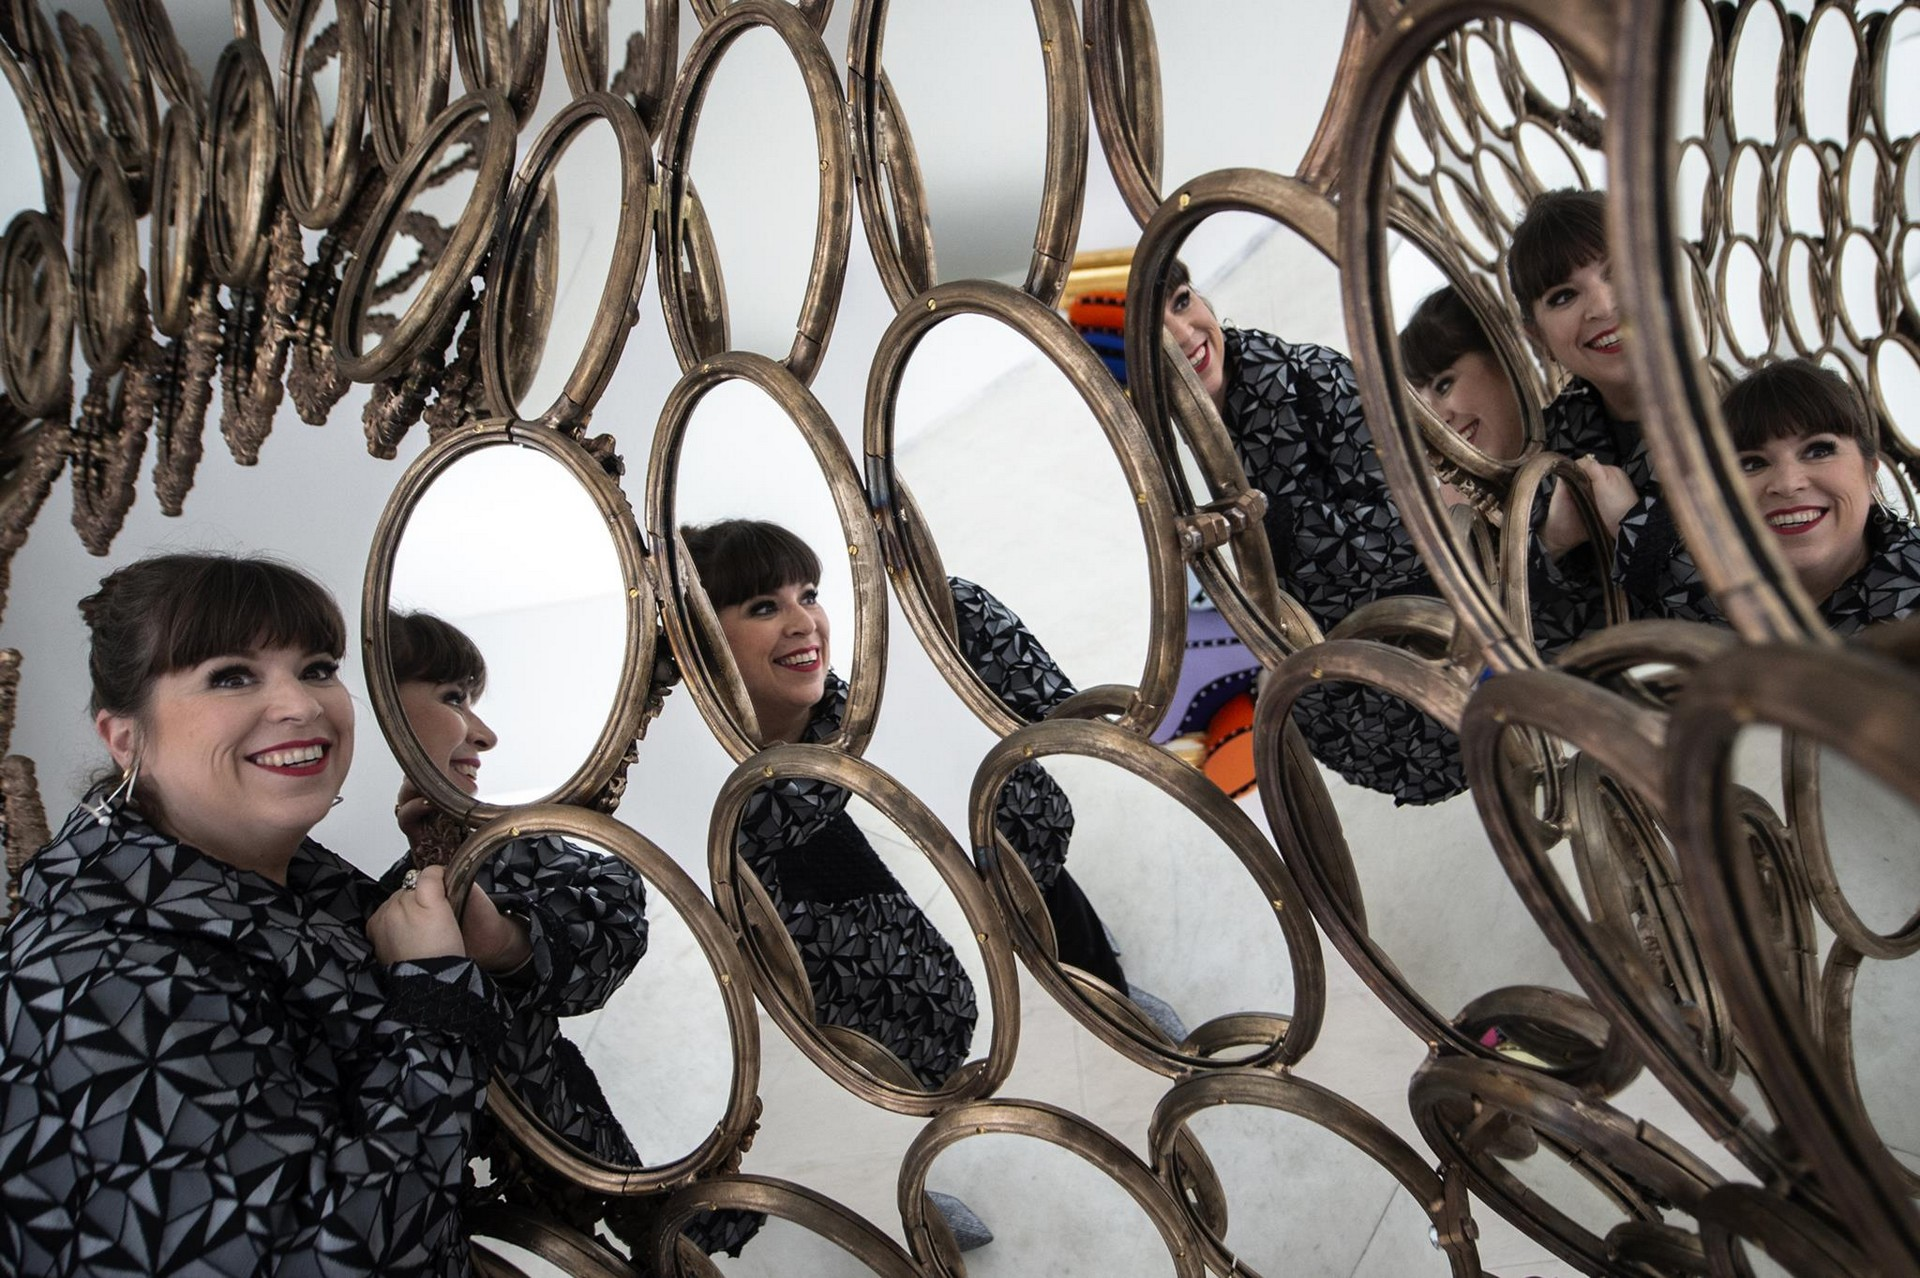 Joana Vasconcelos Takes Over Serralves with I'm Your Mirror joana vasconcelos Joana Vasconcelos Takes Over Serralves with I'm Your Mirror Joana Vasconcelos Takes Over Serralves with Im Your Mirror 5